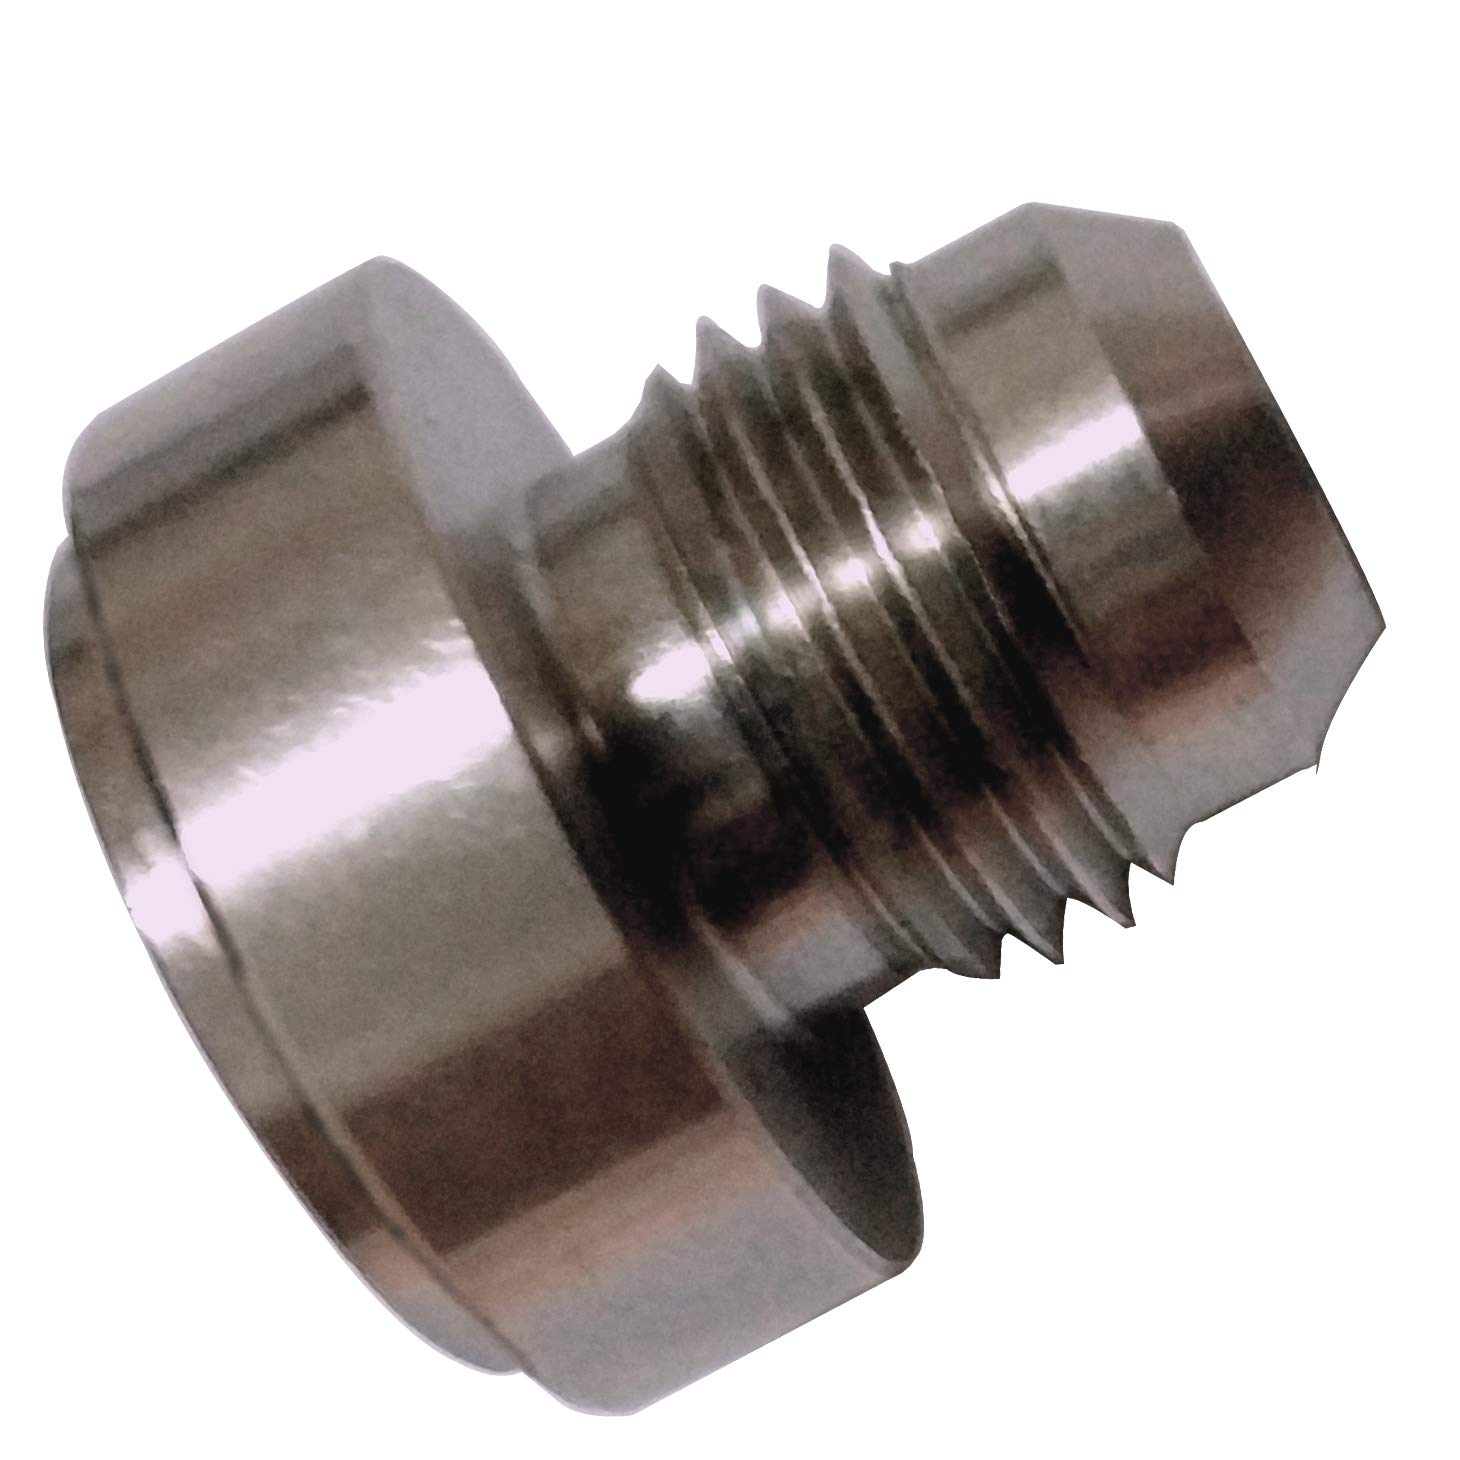 Weld on Bung Hose Barb Aluminum Nipple 3//4 inch Barbed Weldable Pipe Adapter Fittings